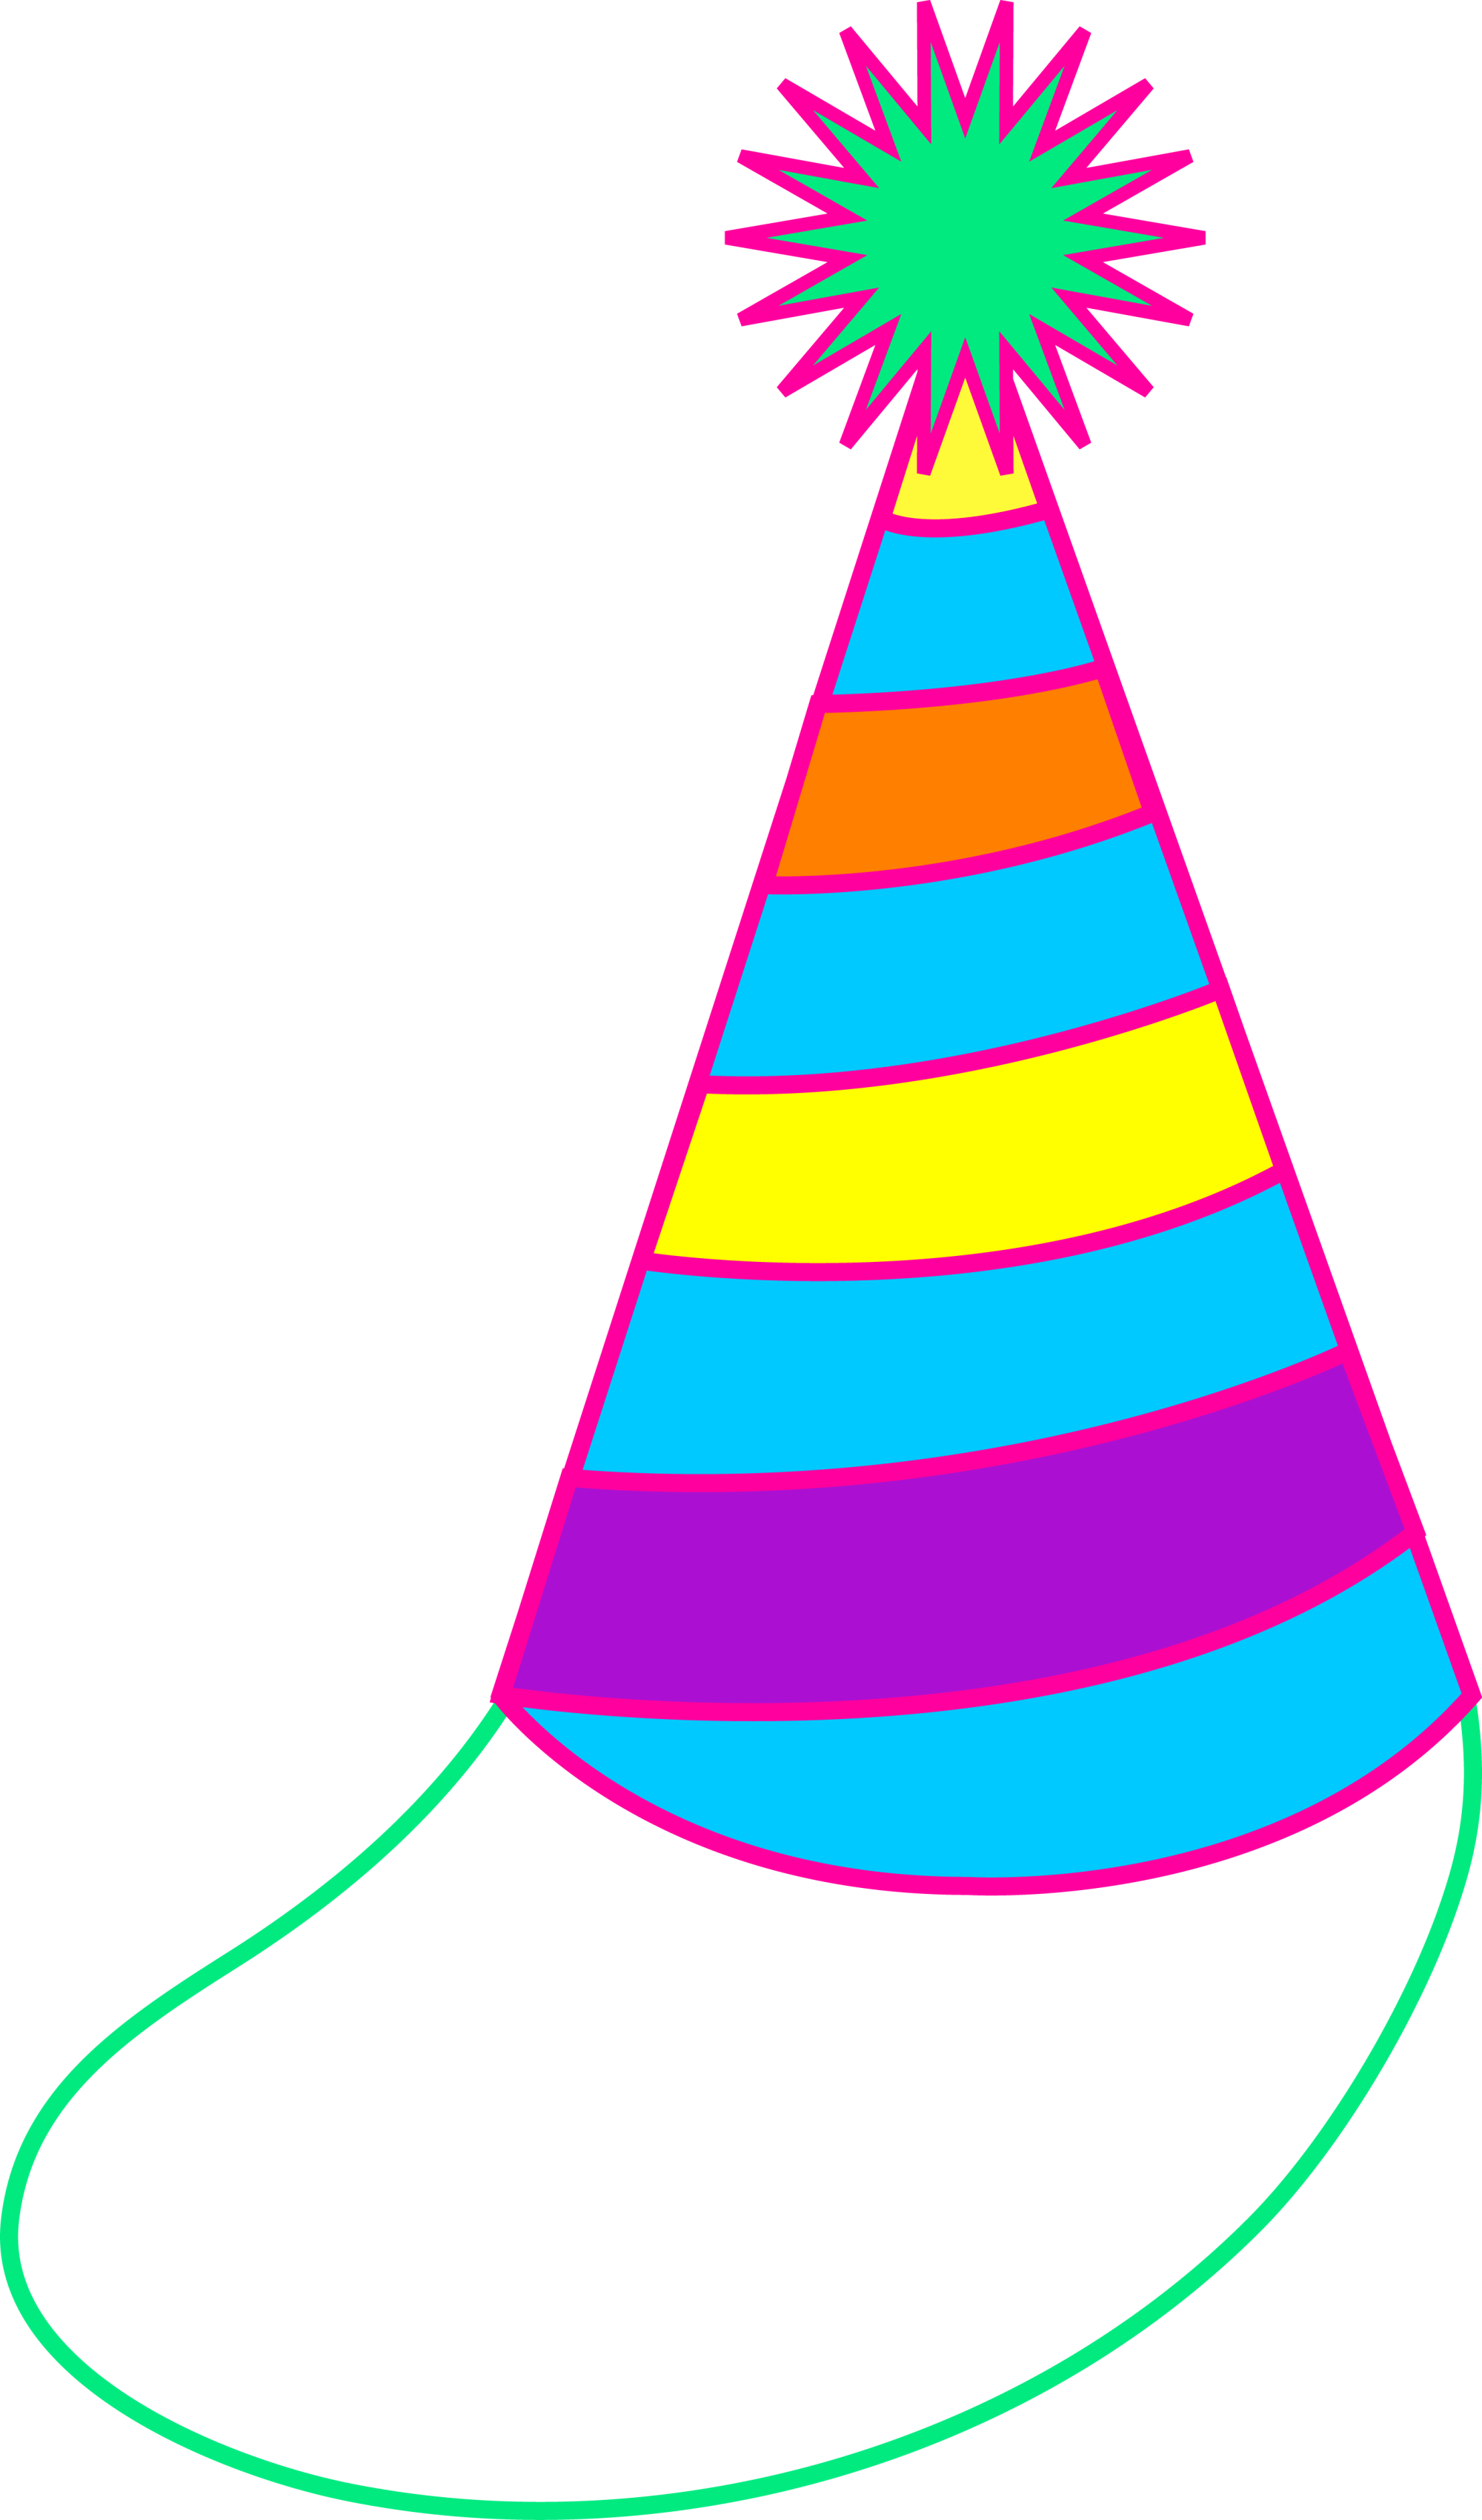 hight resolution of colorful party hat free clip art